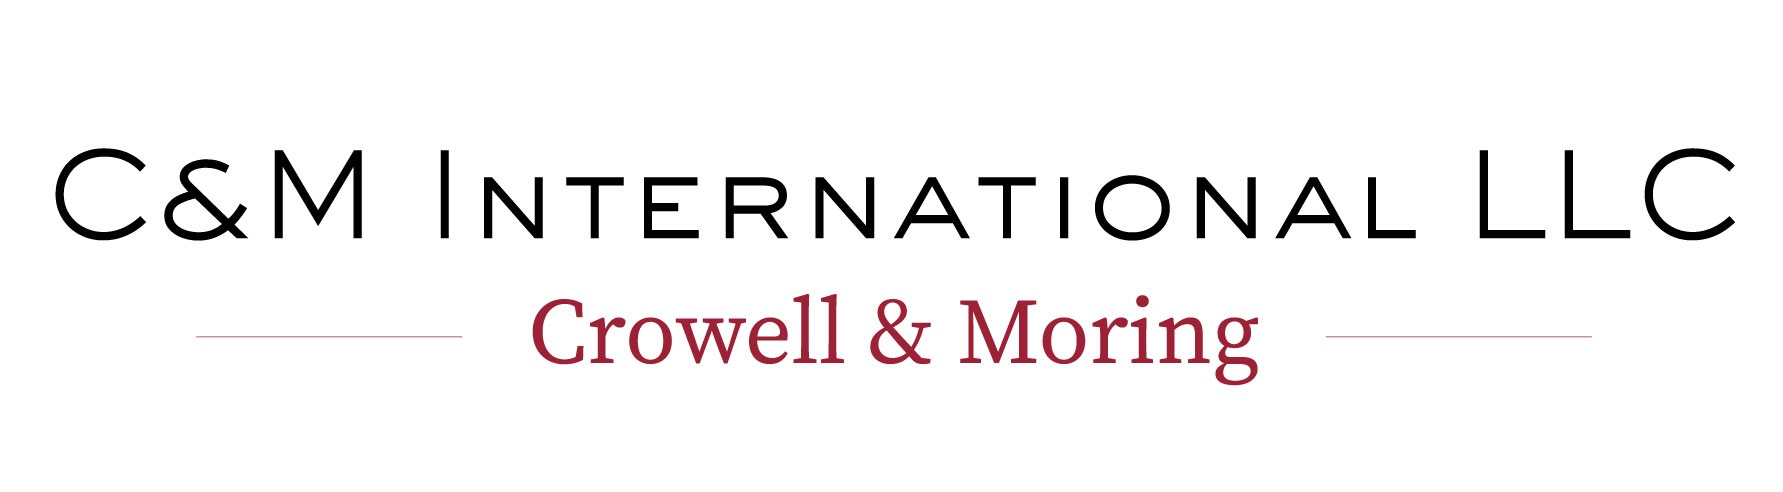 C&M International